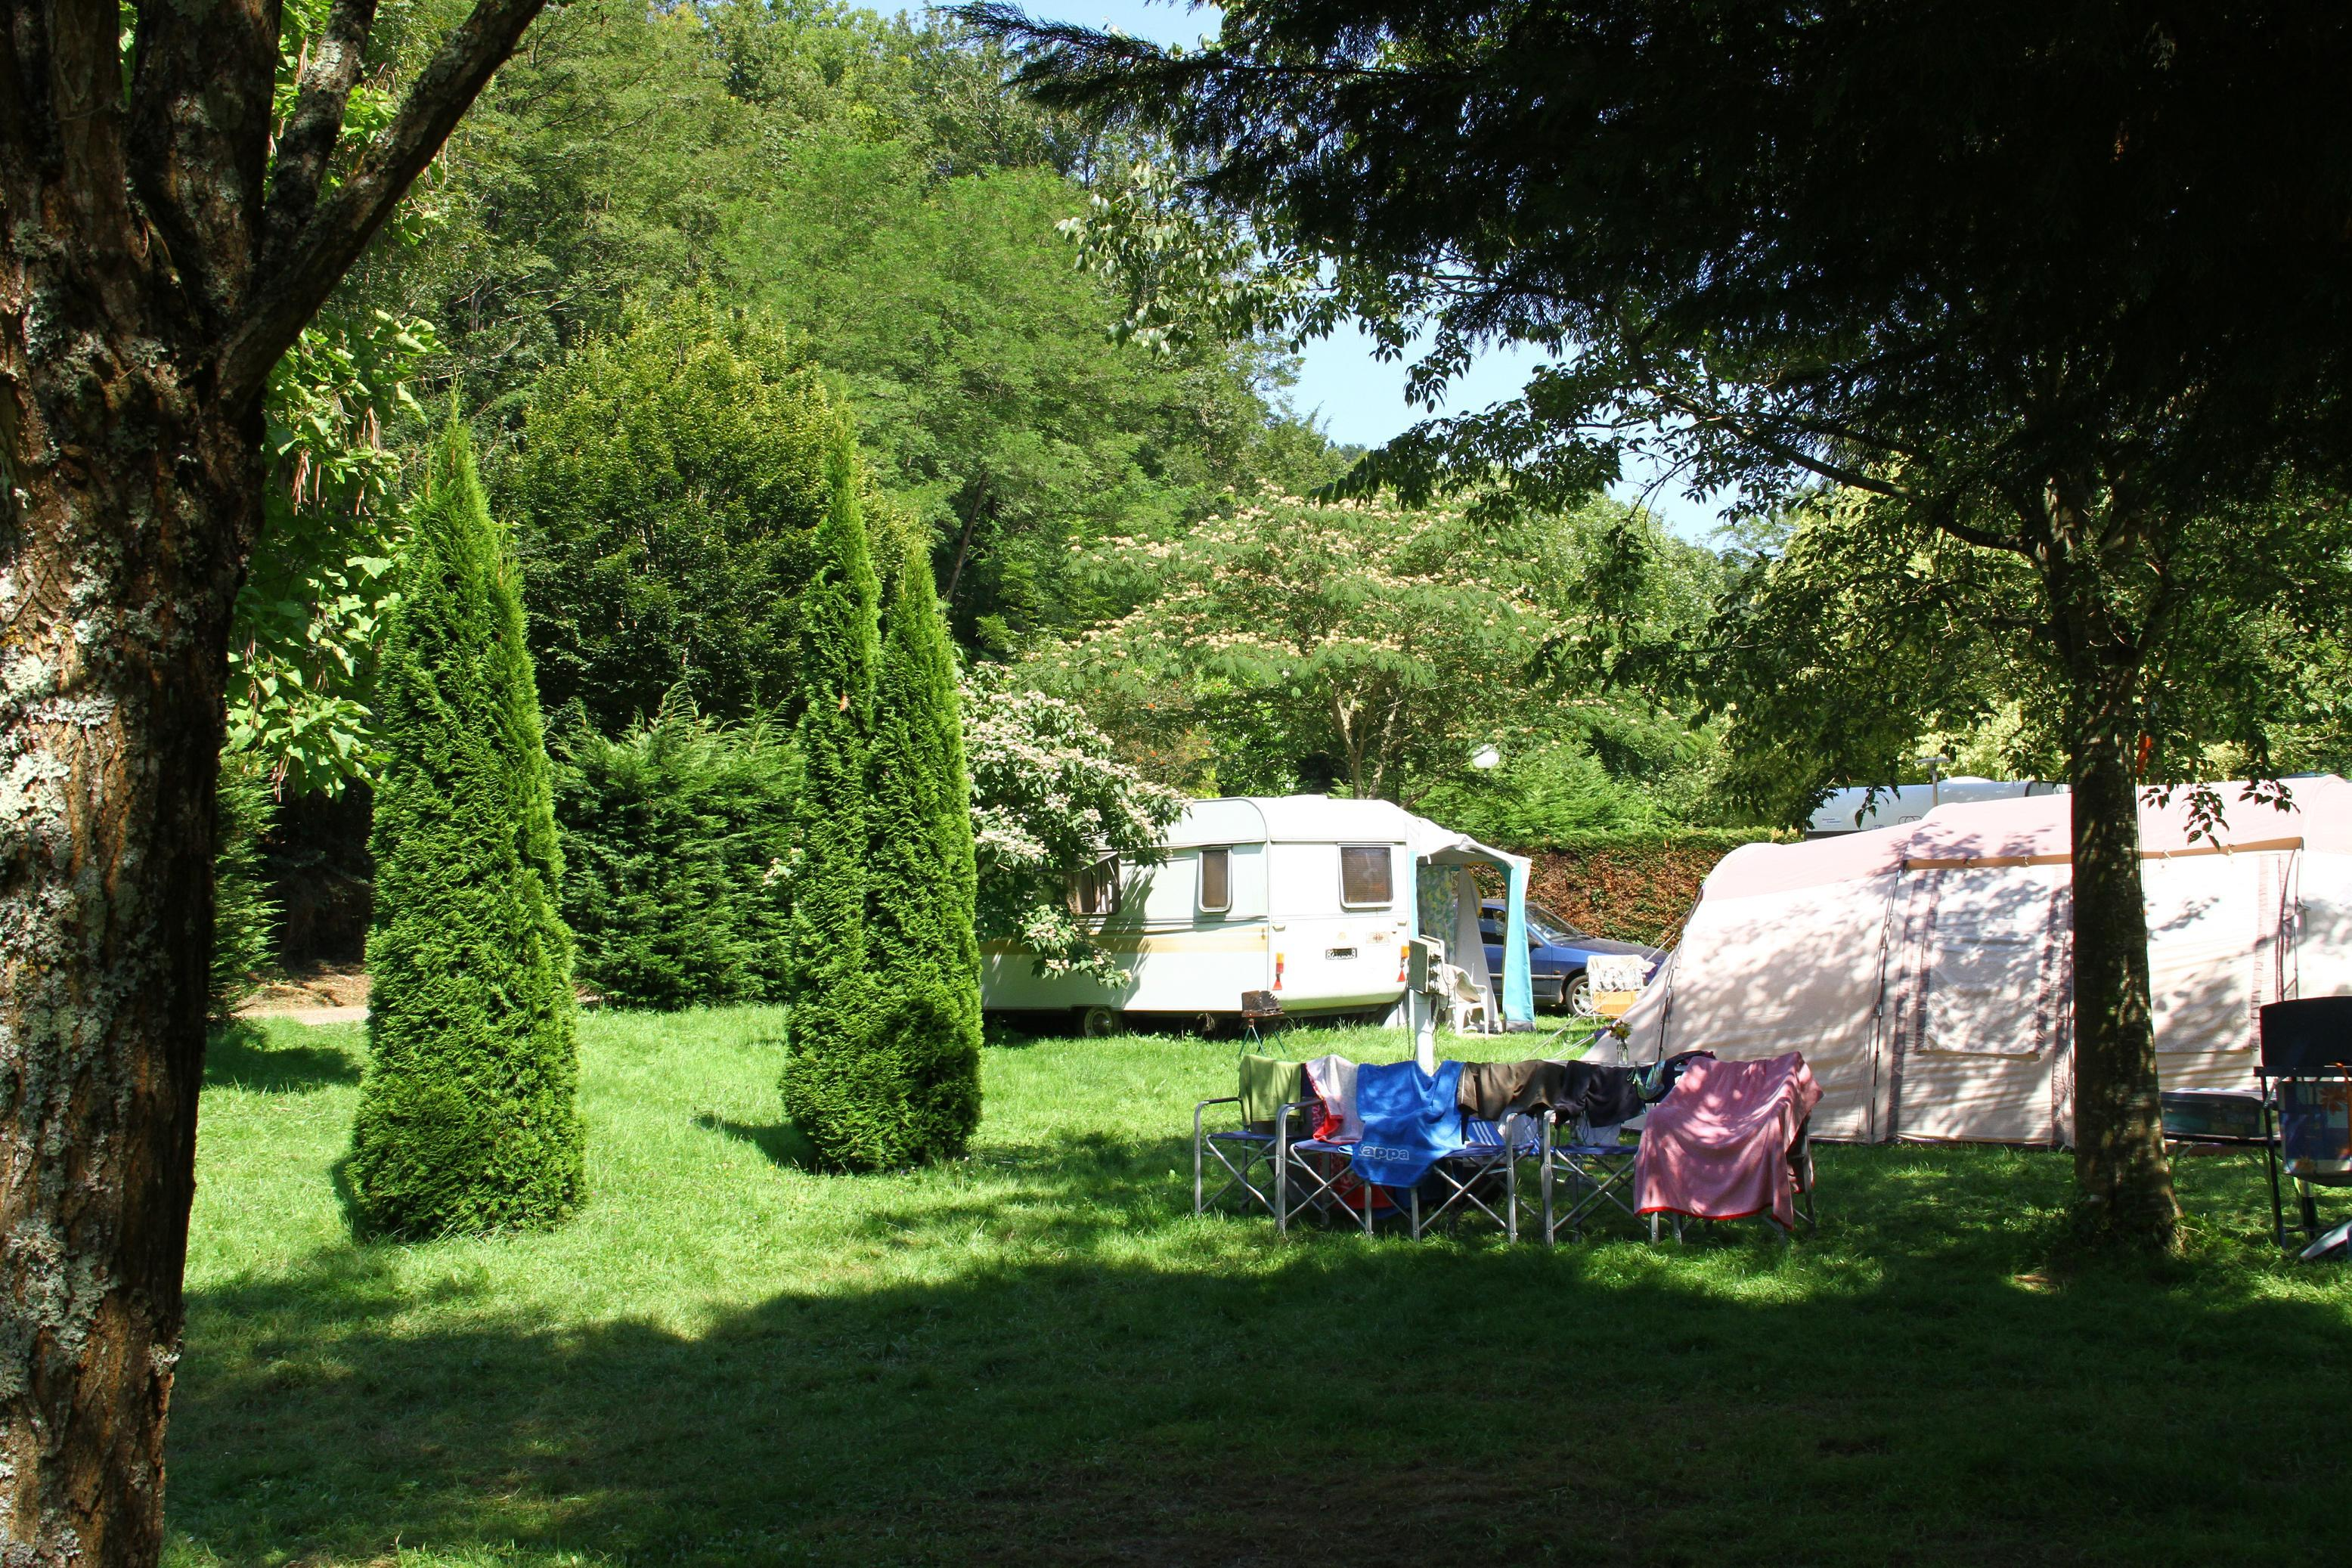 Comfort Package 100/120m² (1 tent, caravan or motorhome / 1 car / electricity 6A)